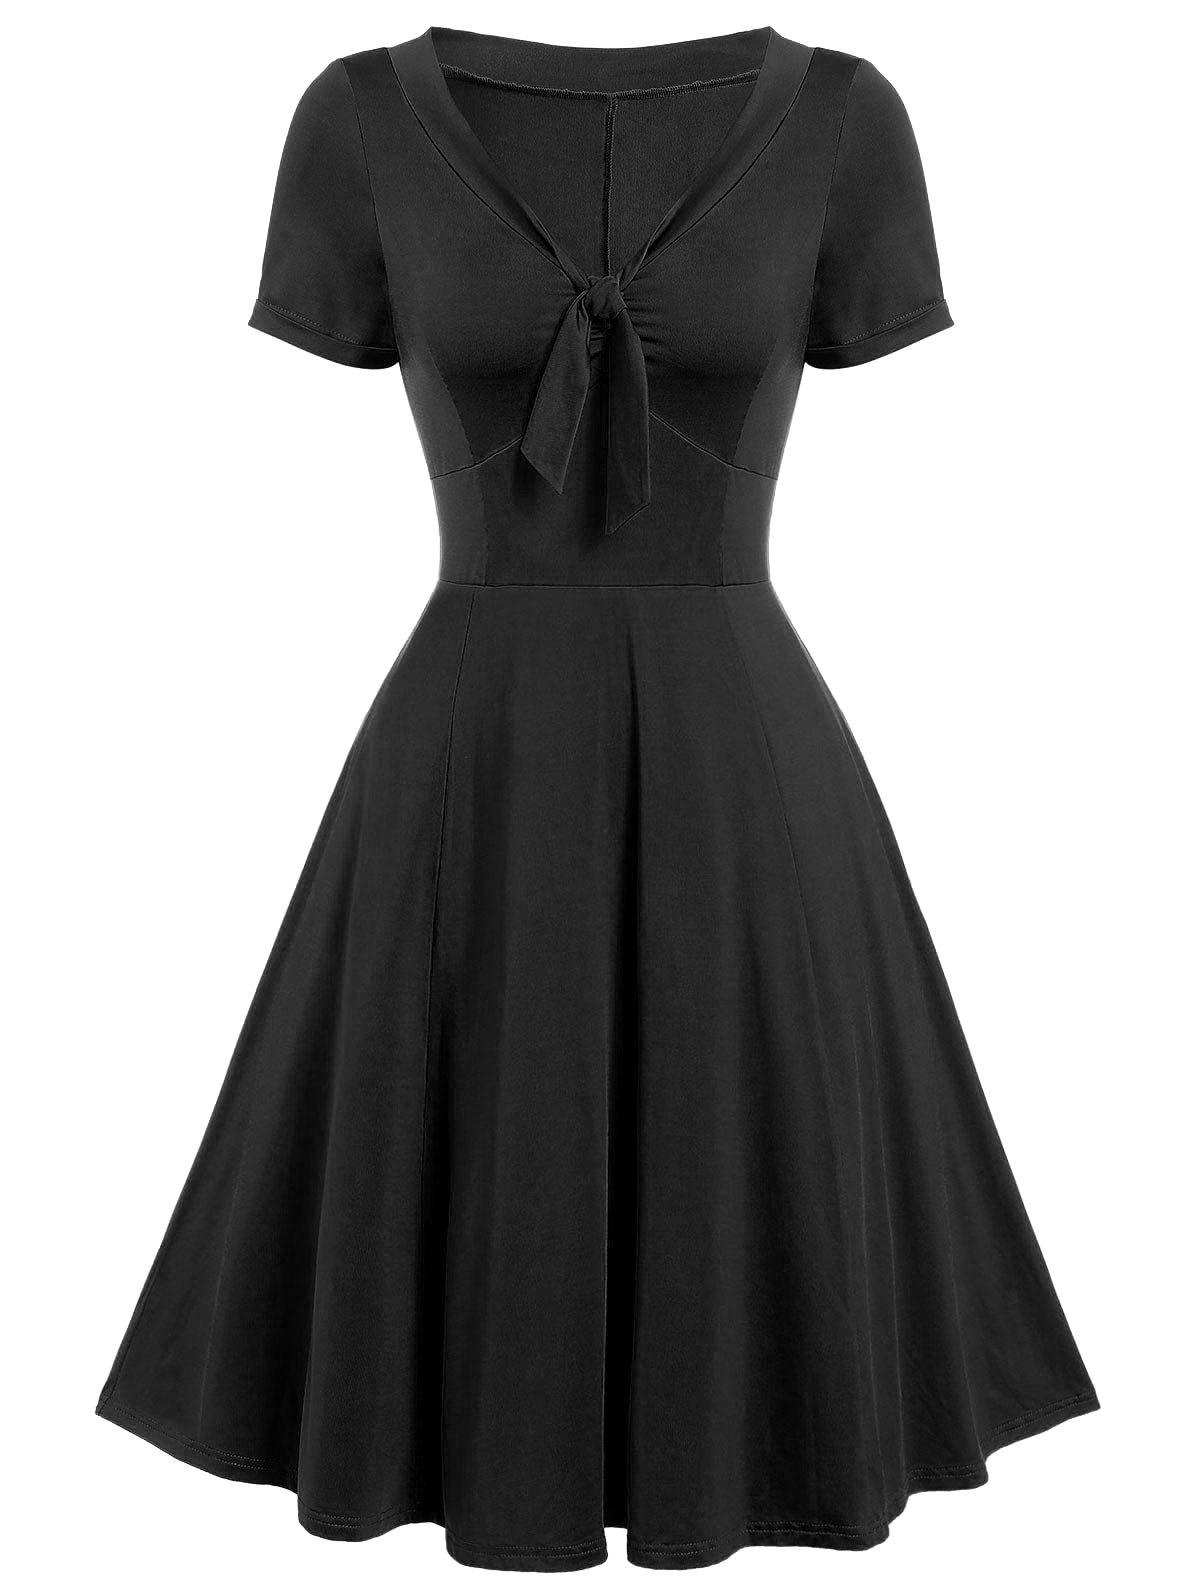 Sale Vintage Bow Tie Fit and Flare Dress